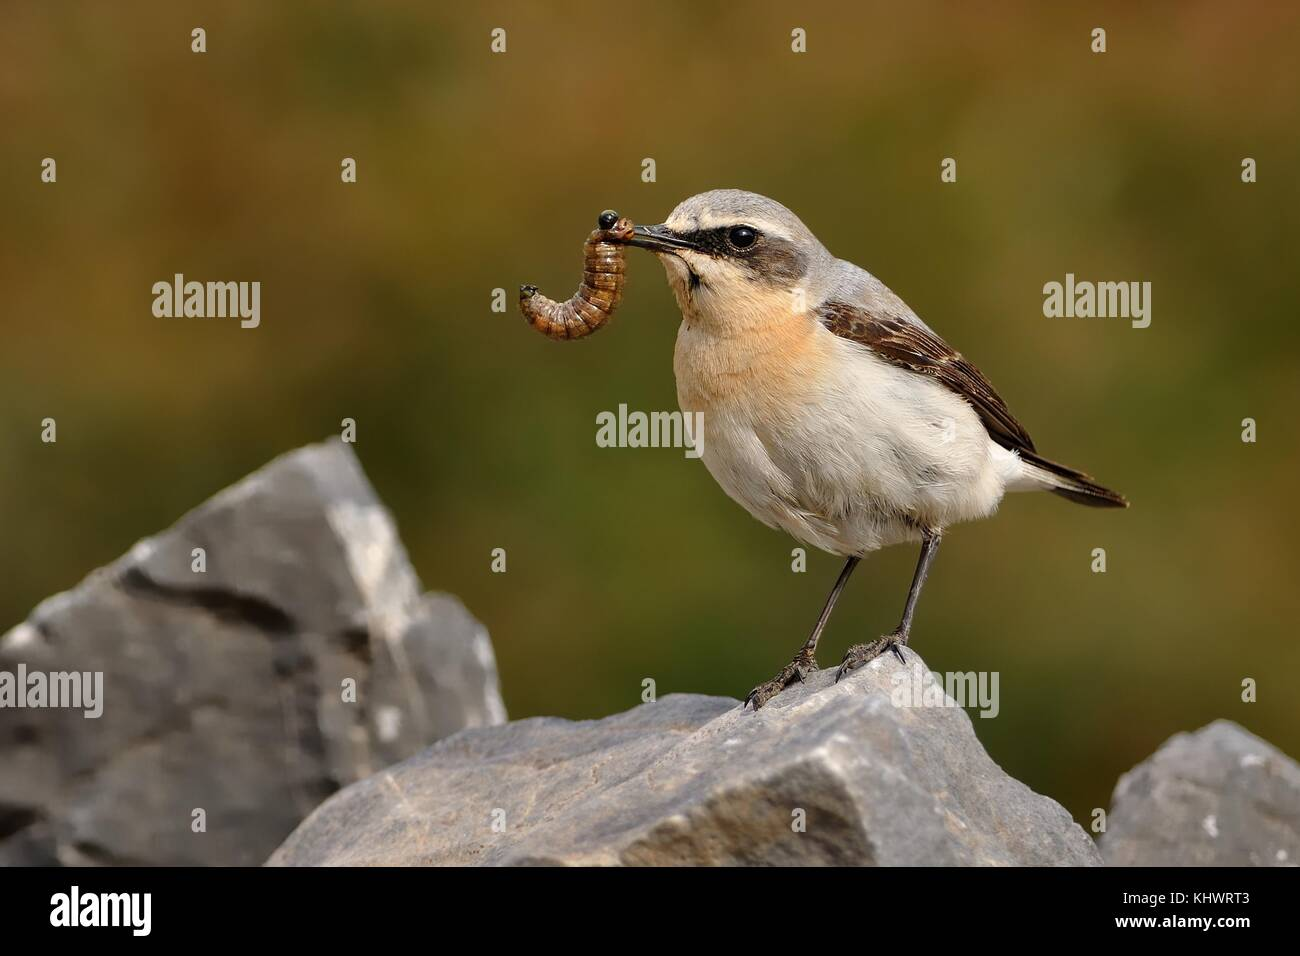 Northern Wheatear (Oenanthe oenanthe) with the caterpillar during its chicks feeding. Sitting on the stone on rocky - Stock Image